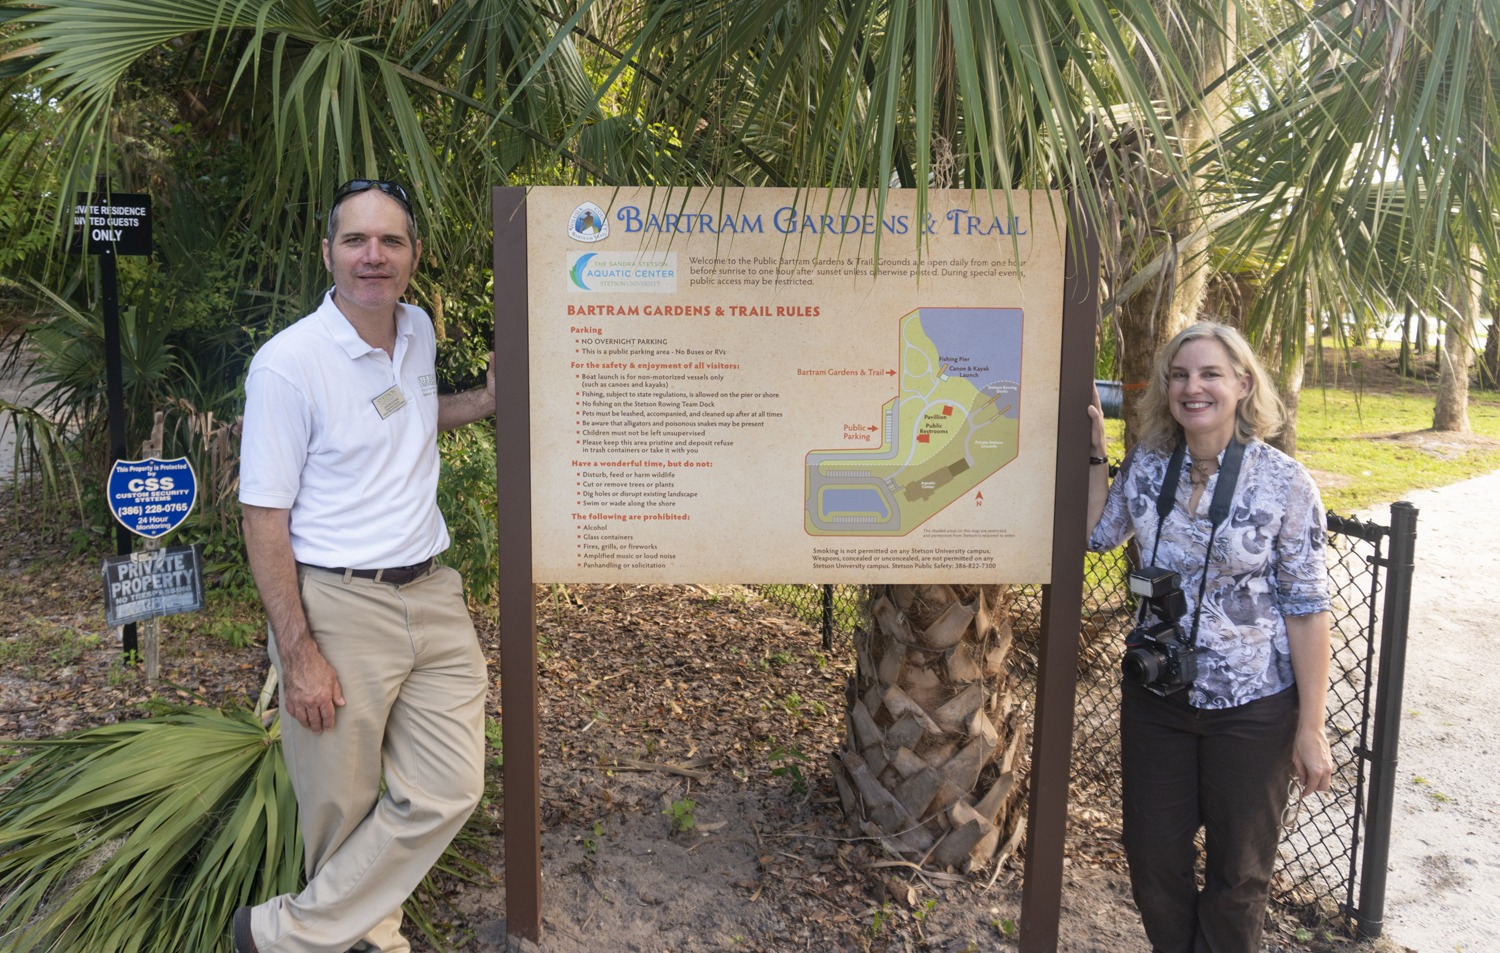 Dr. Jason Evans, current chair of the Institute for Water and Environmental Resilience and Stephanie Liskey with the Welcome sign at the public entrance to the Bartram Gardens and Trail.